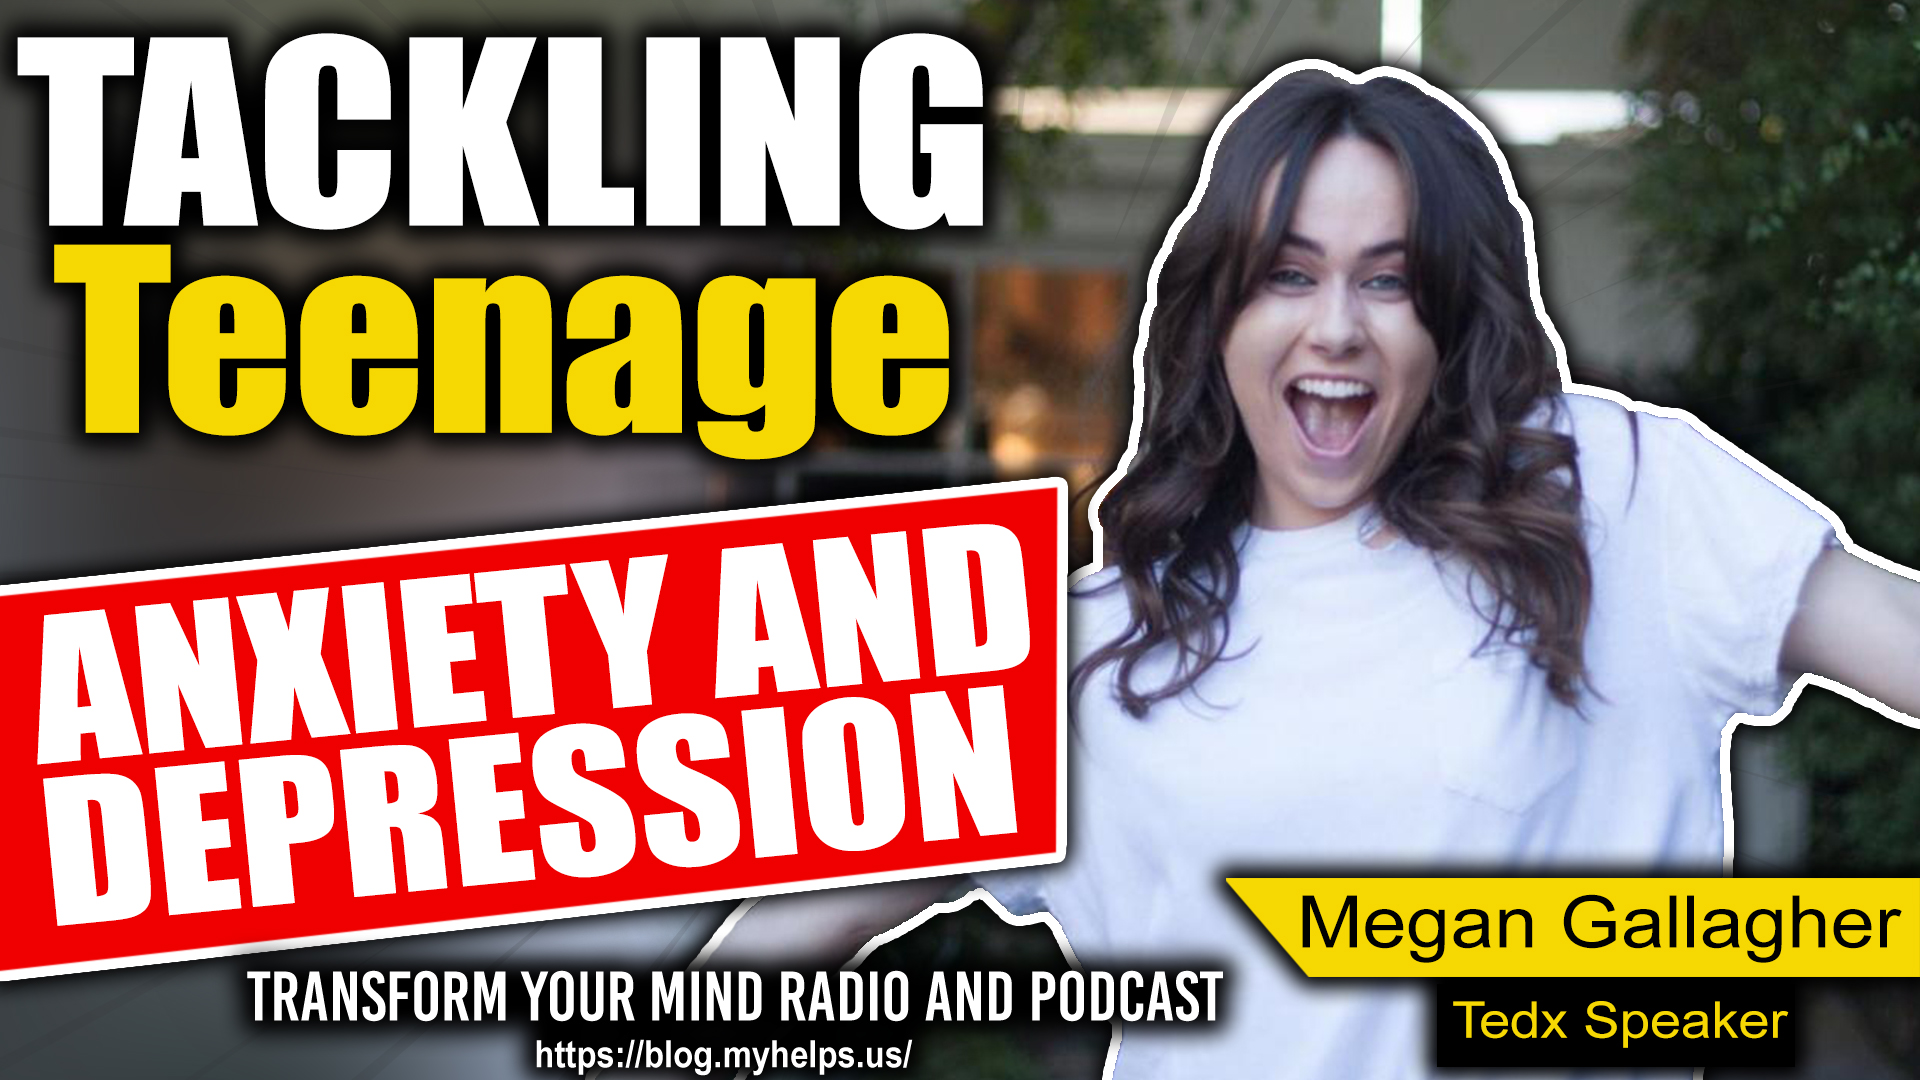 Tackling Teenage Anxiety and Depression